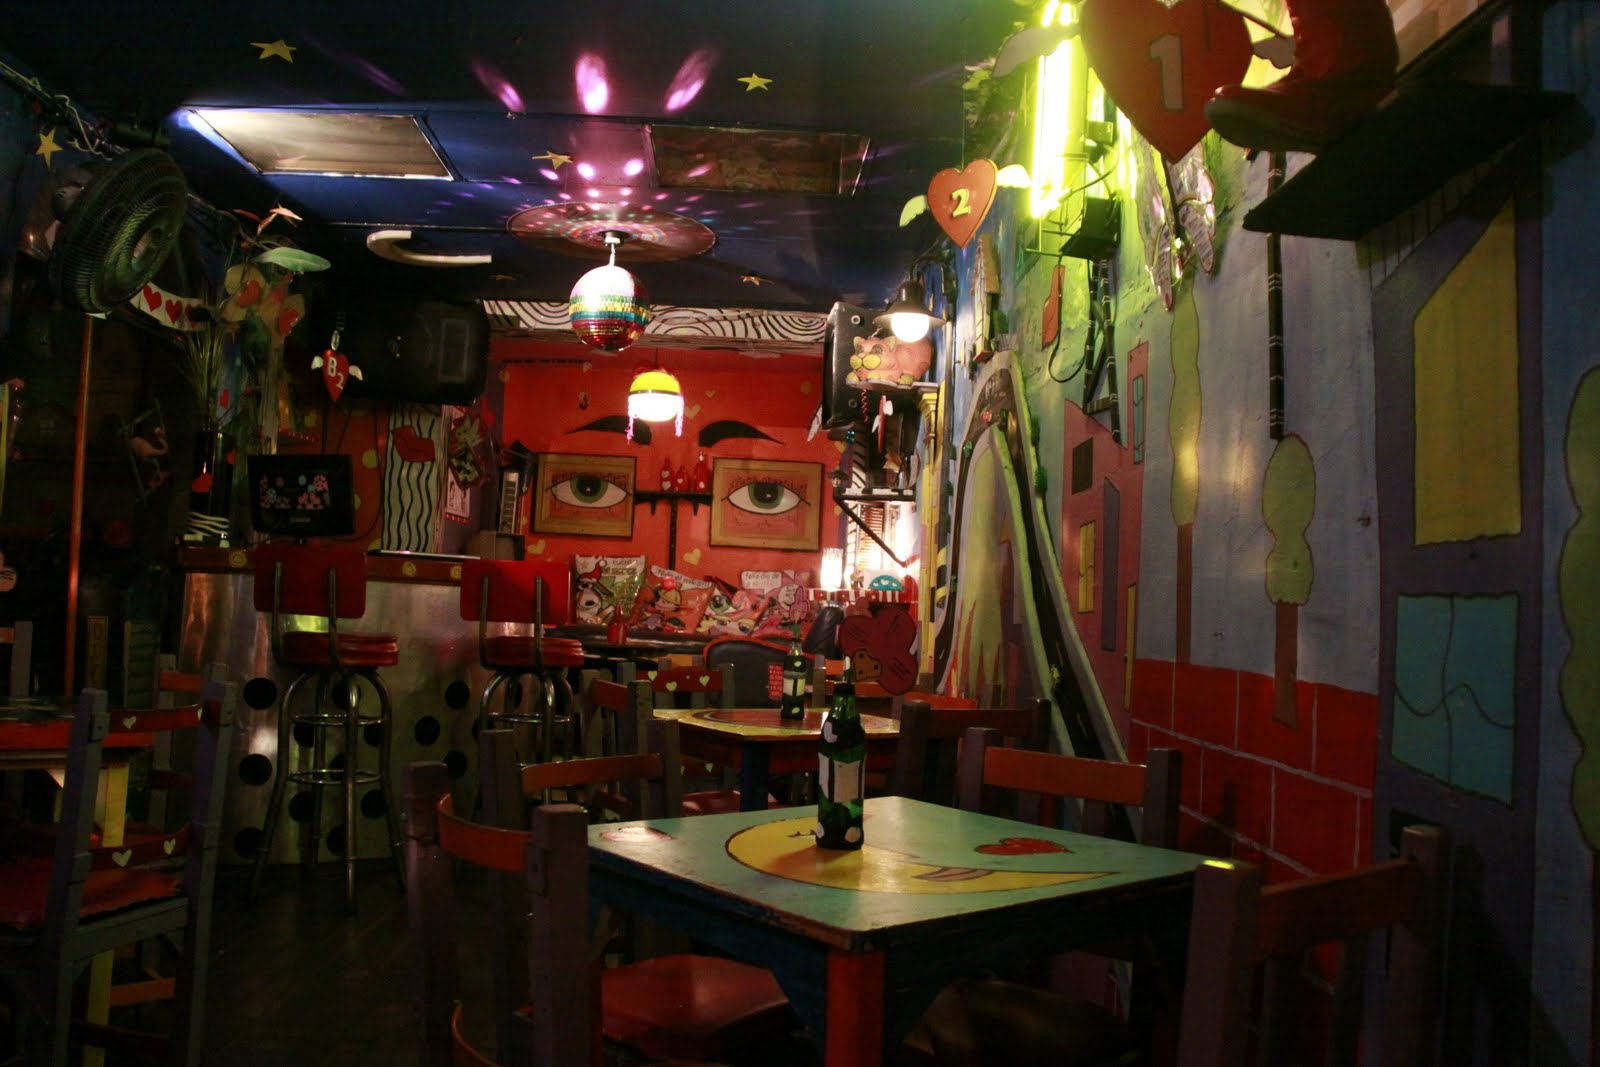 Decoracion bar karaoke - Decoracion de bar ...